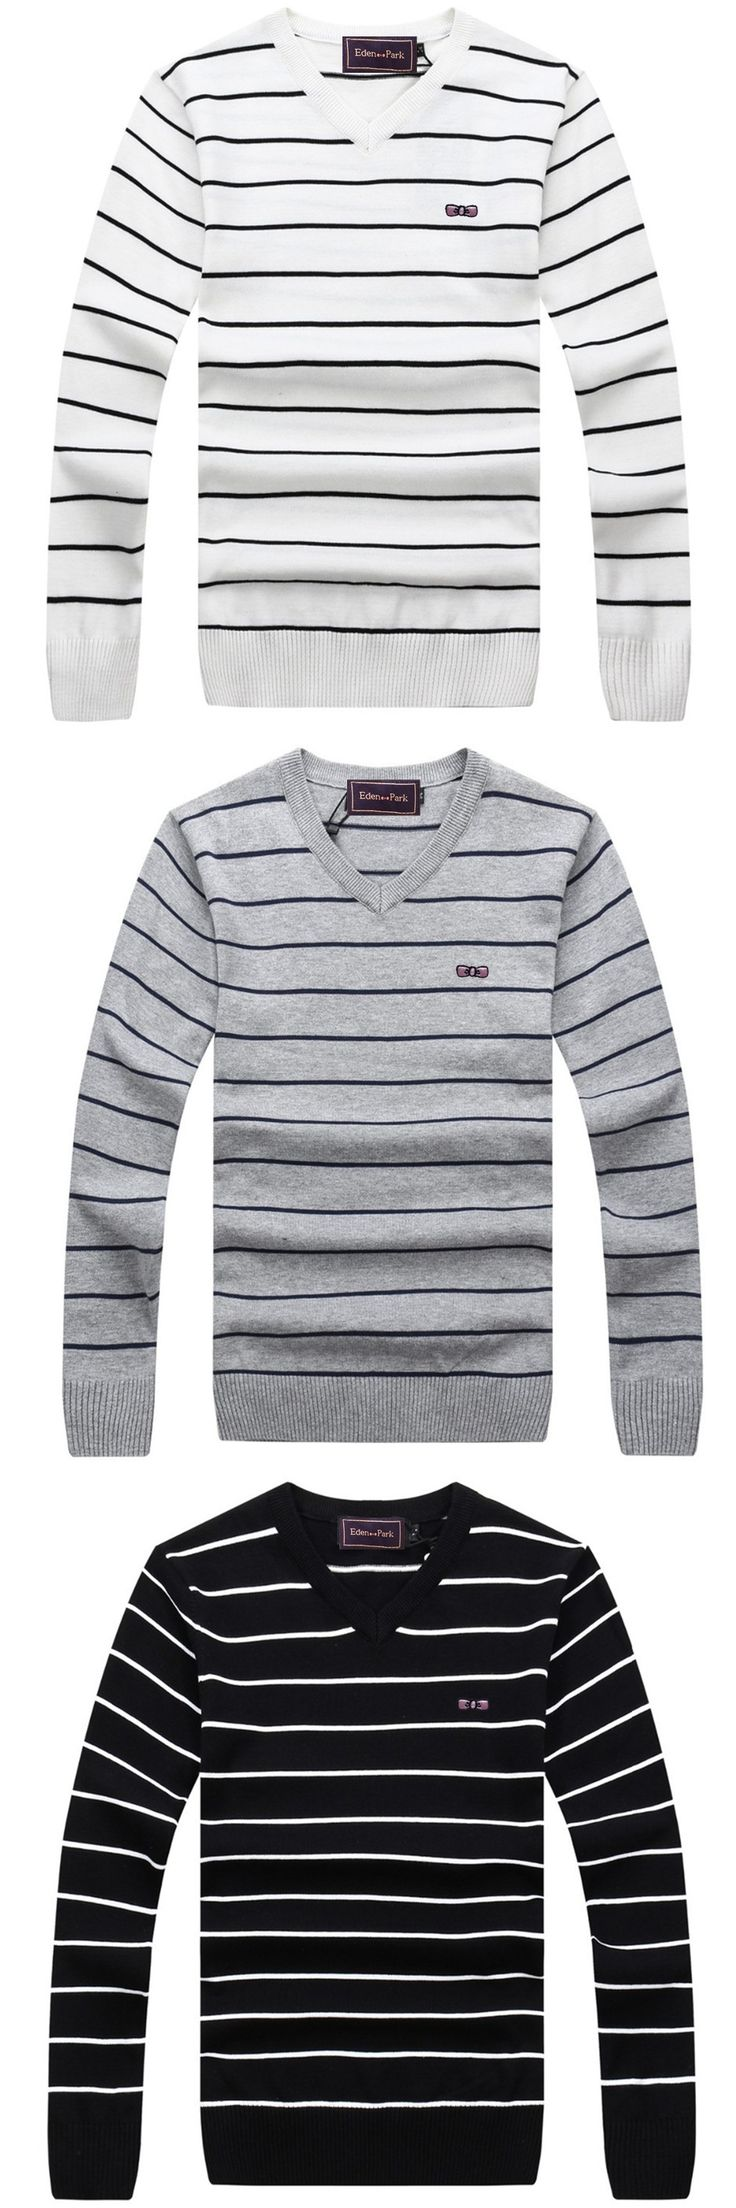 09c722a43f3 EDEN PARK MEN S SWEATER KNITTED PULLOVER V-NECK SPRING WINTER BRAND HORSE  AND MARTINA LEISURE